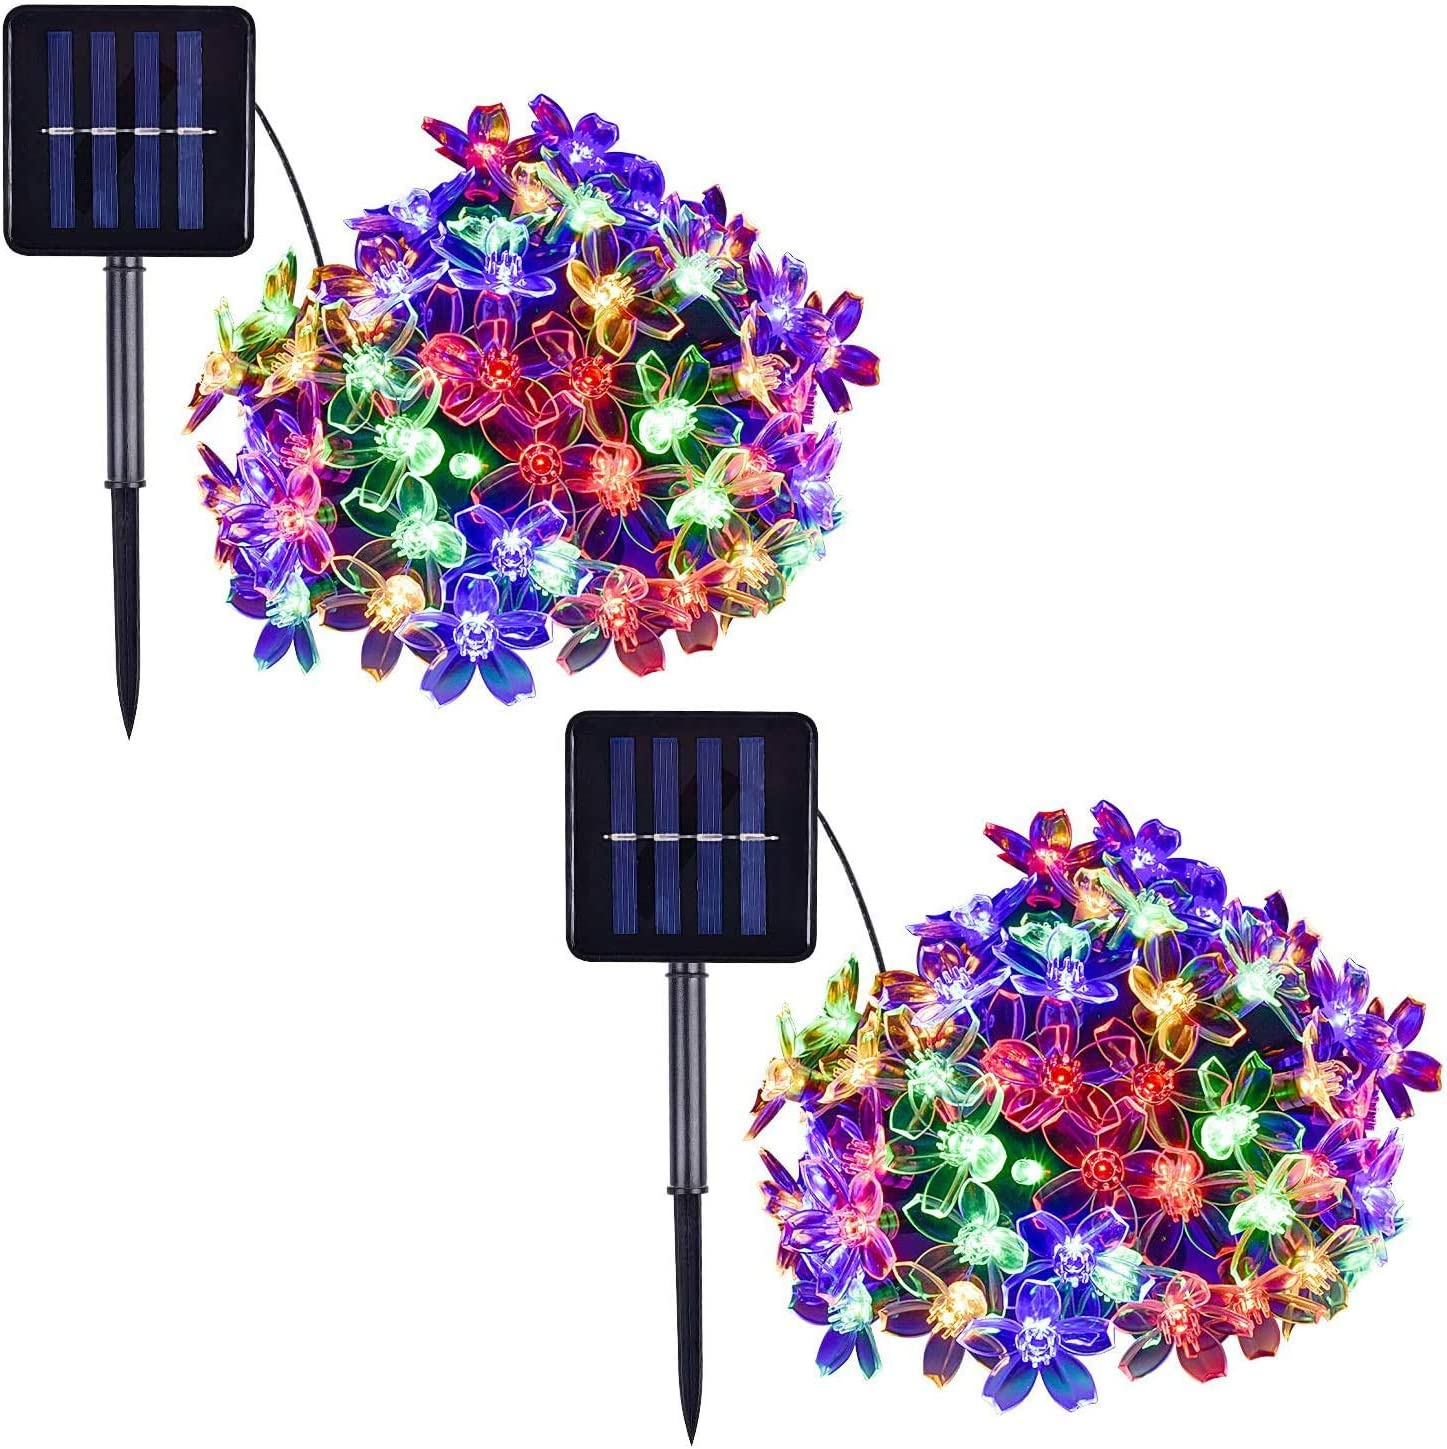 sprklinlin 2 Pack Solar String Lights Outdoor Decoracion, 50 LED 16.4ft Multicolor Waterproof Fairy Flower String Christmas Lights for Tree, Patio, Indoor Garden, Room, Holiday